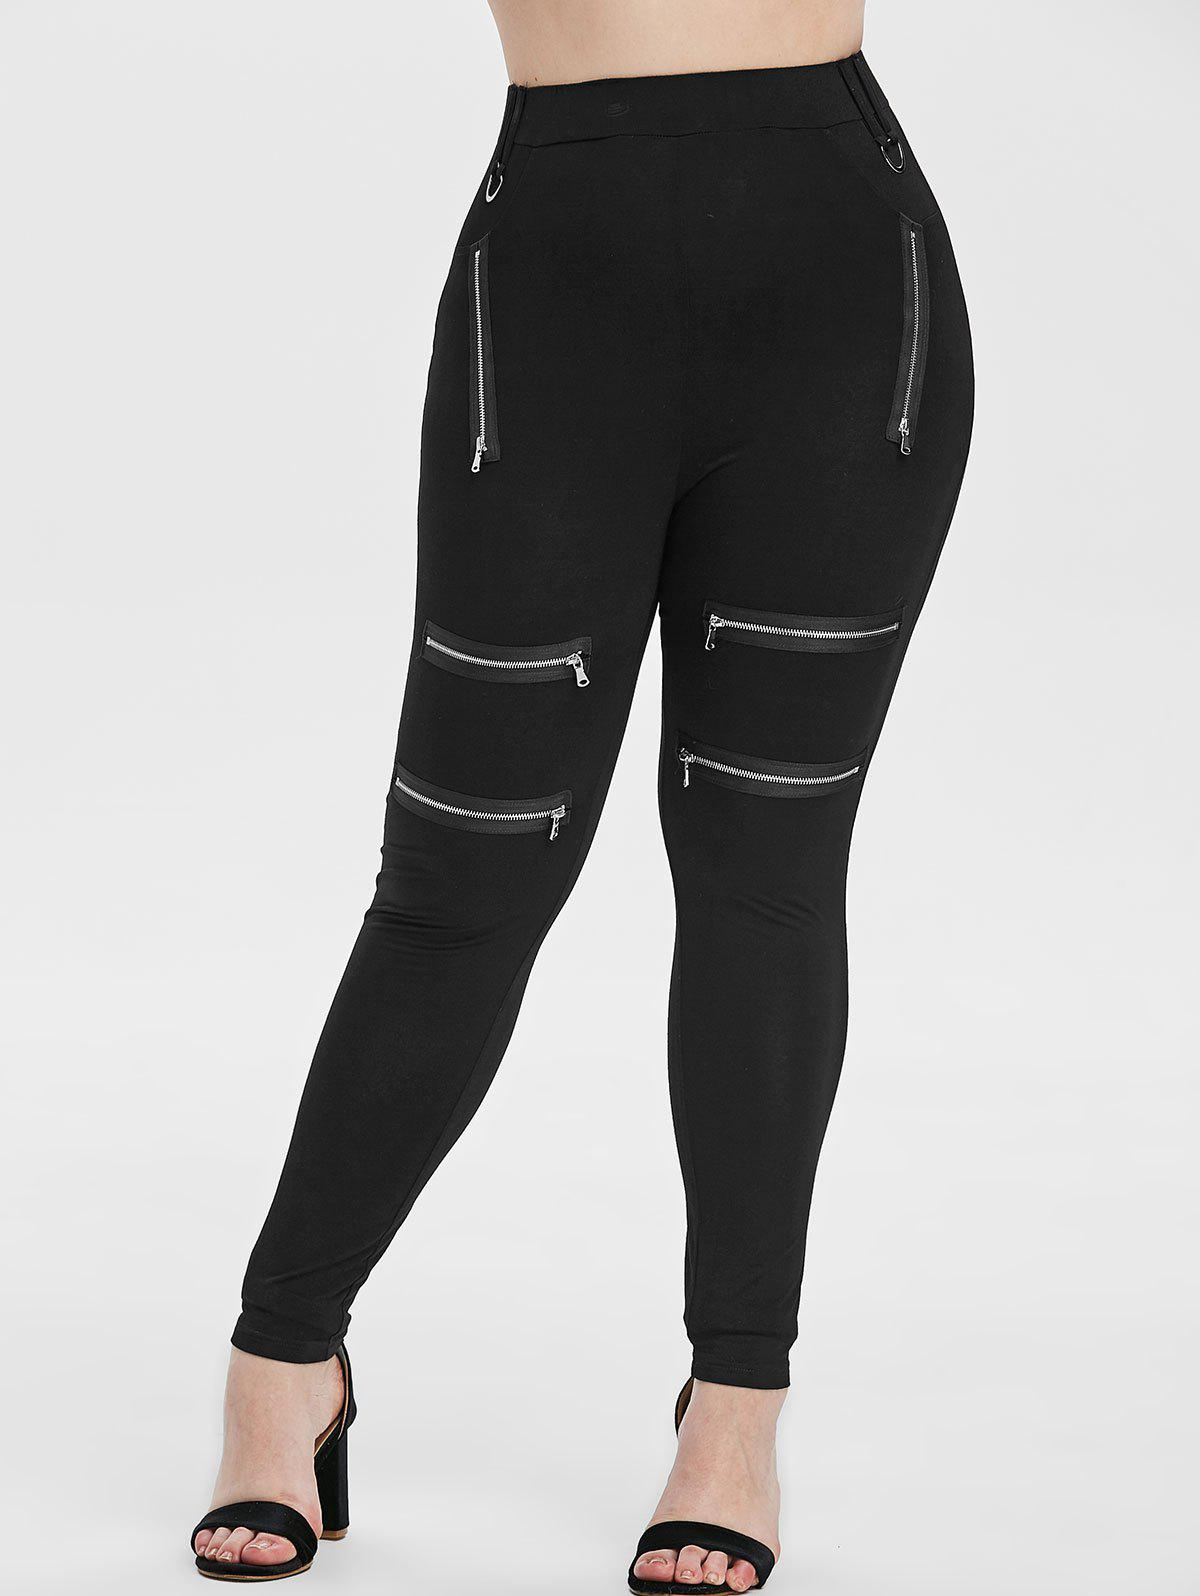 Plus Size Zipper Embellished Fitted Leggings - BLACK 3X